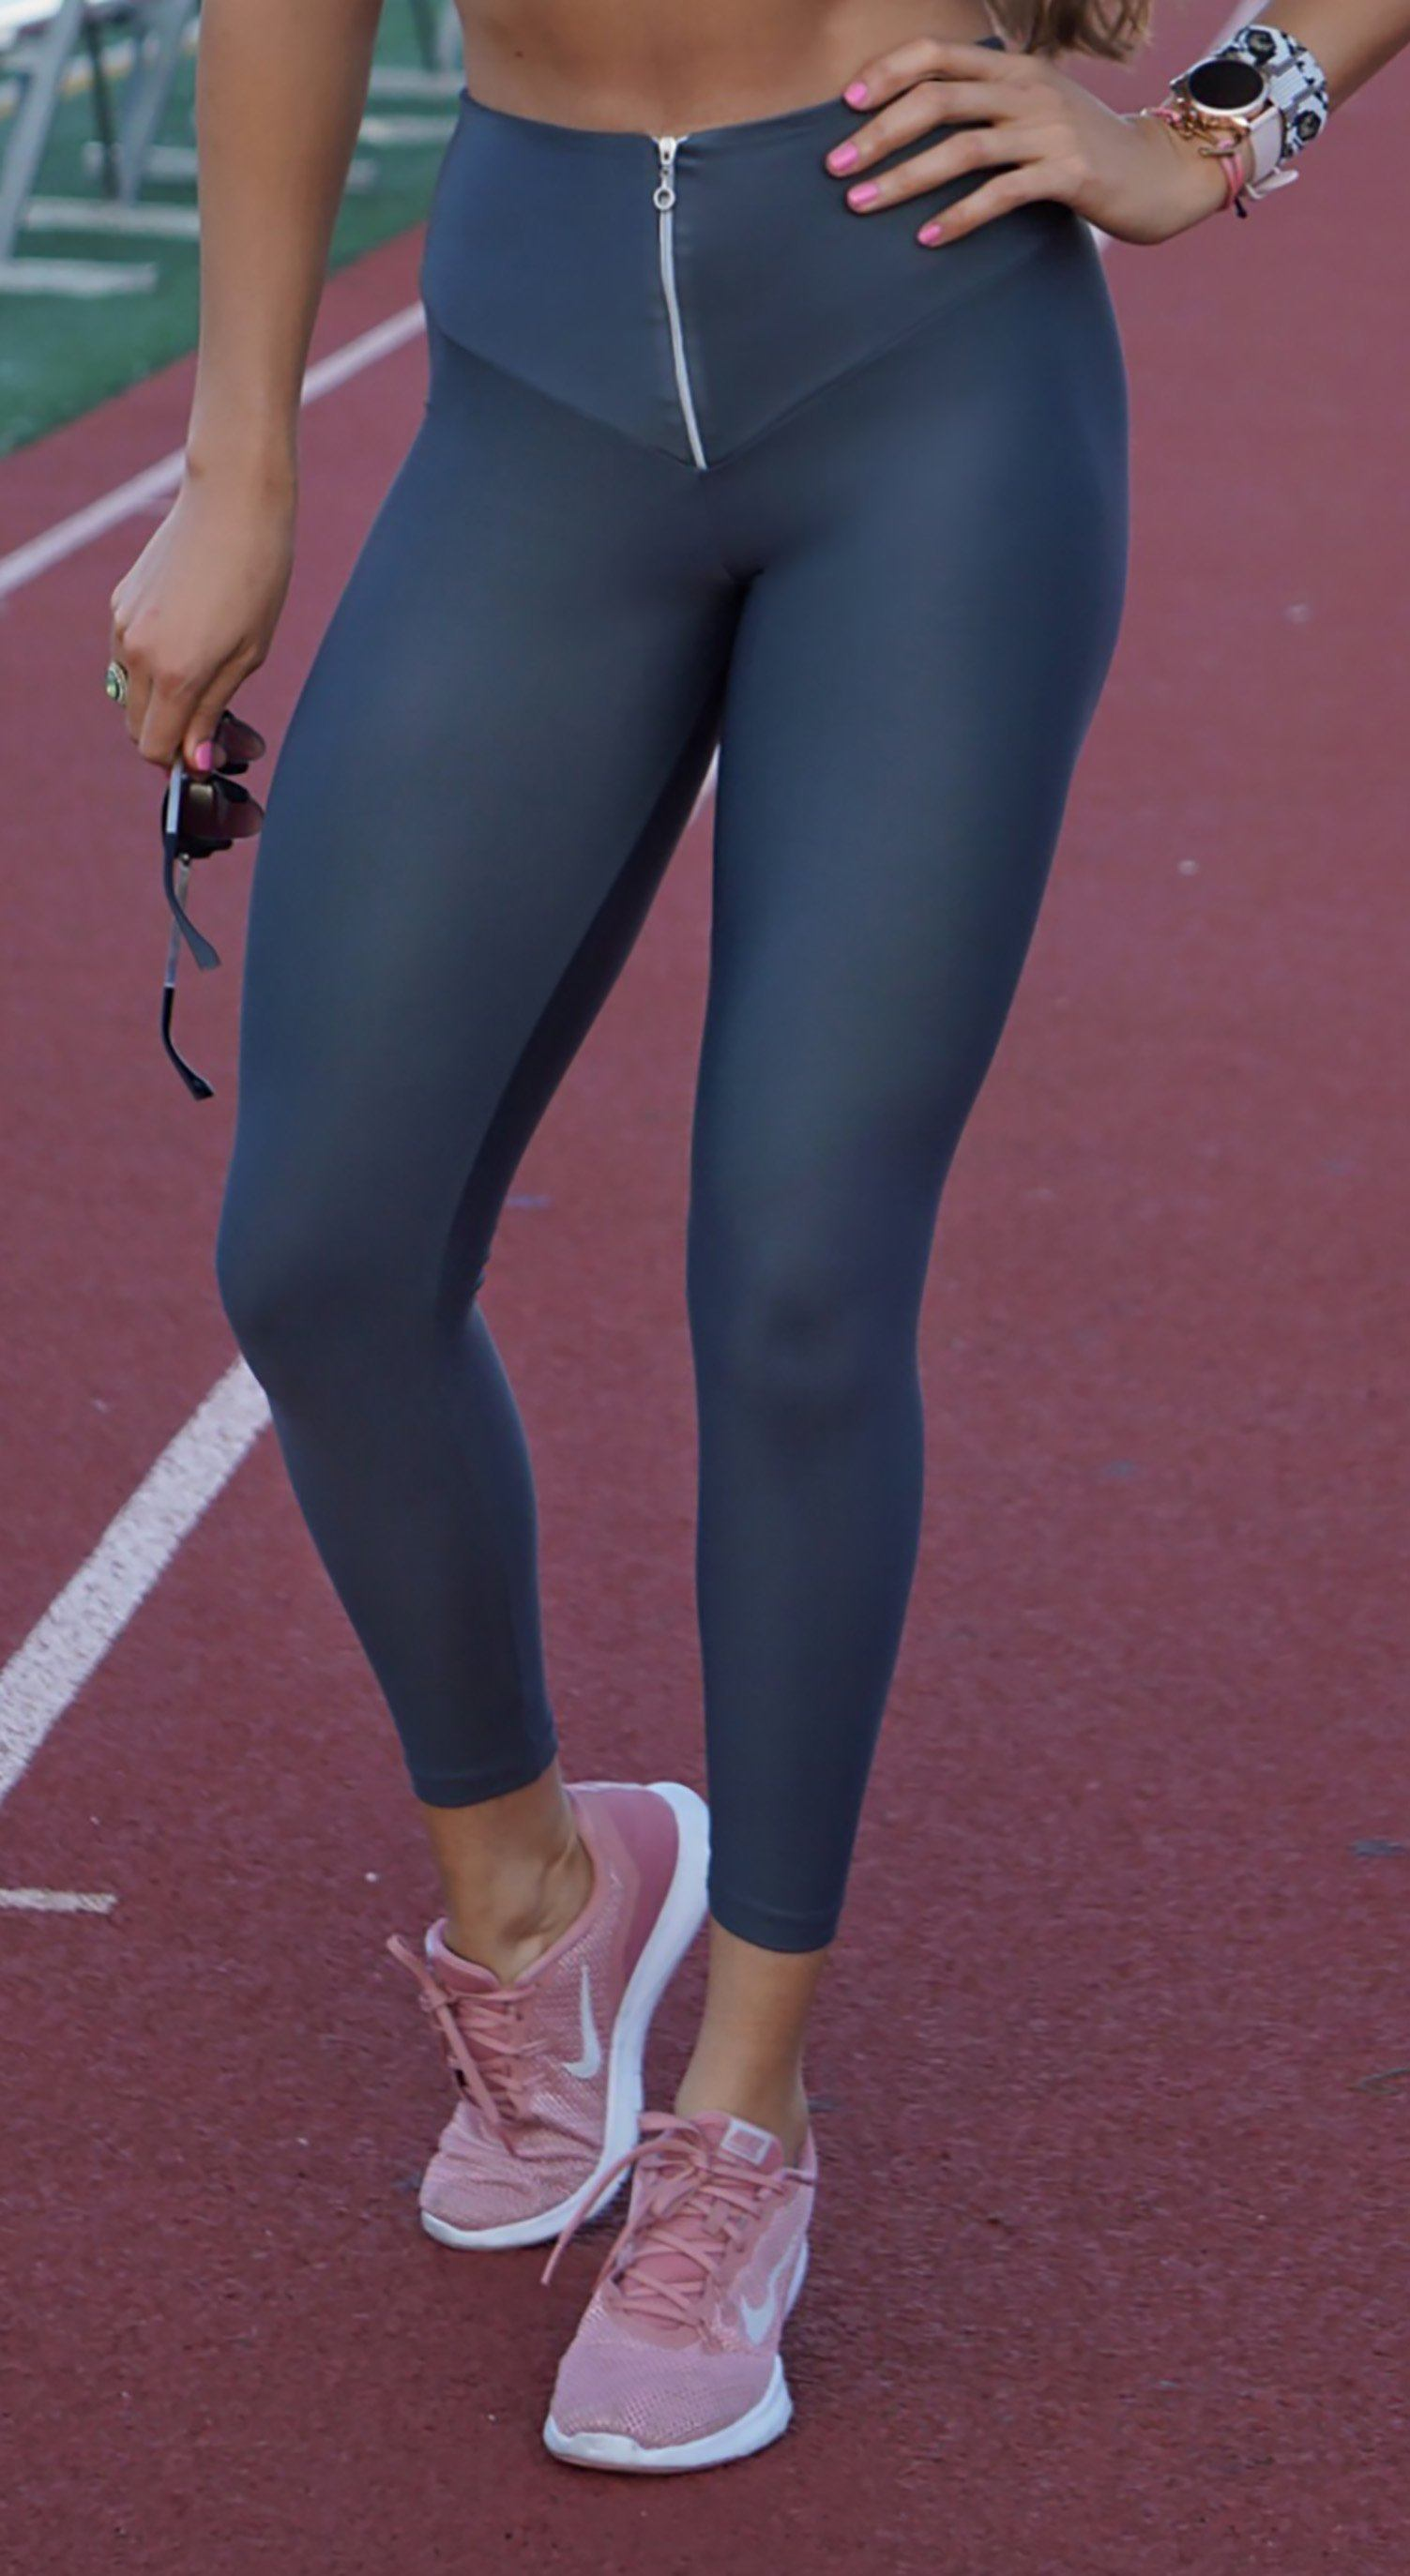 Brazilian Workout Legging - High Waist Scrunch Booty Latex Look Grey